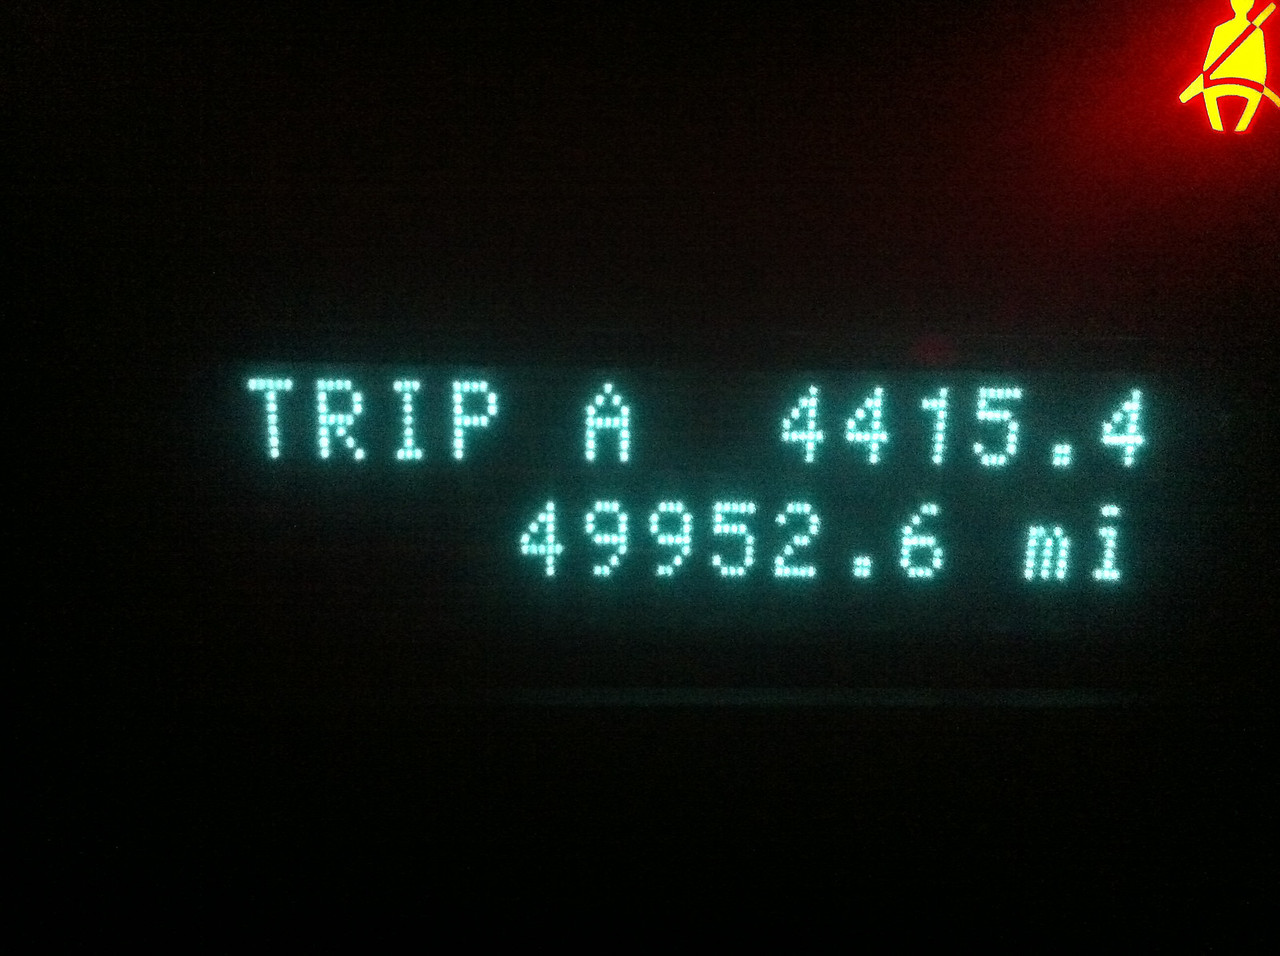 Total miles driven: 4415.4